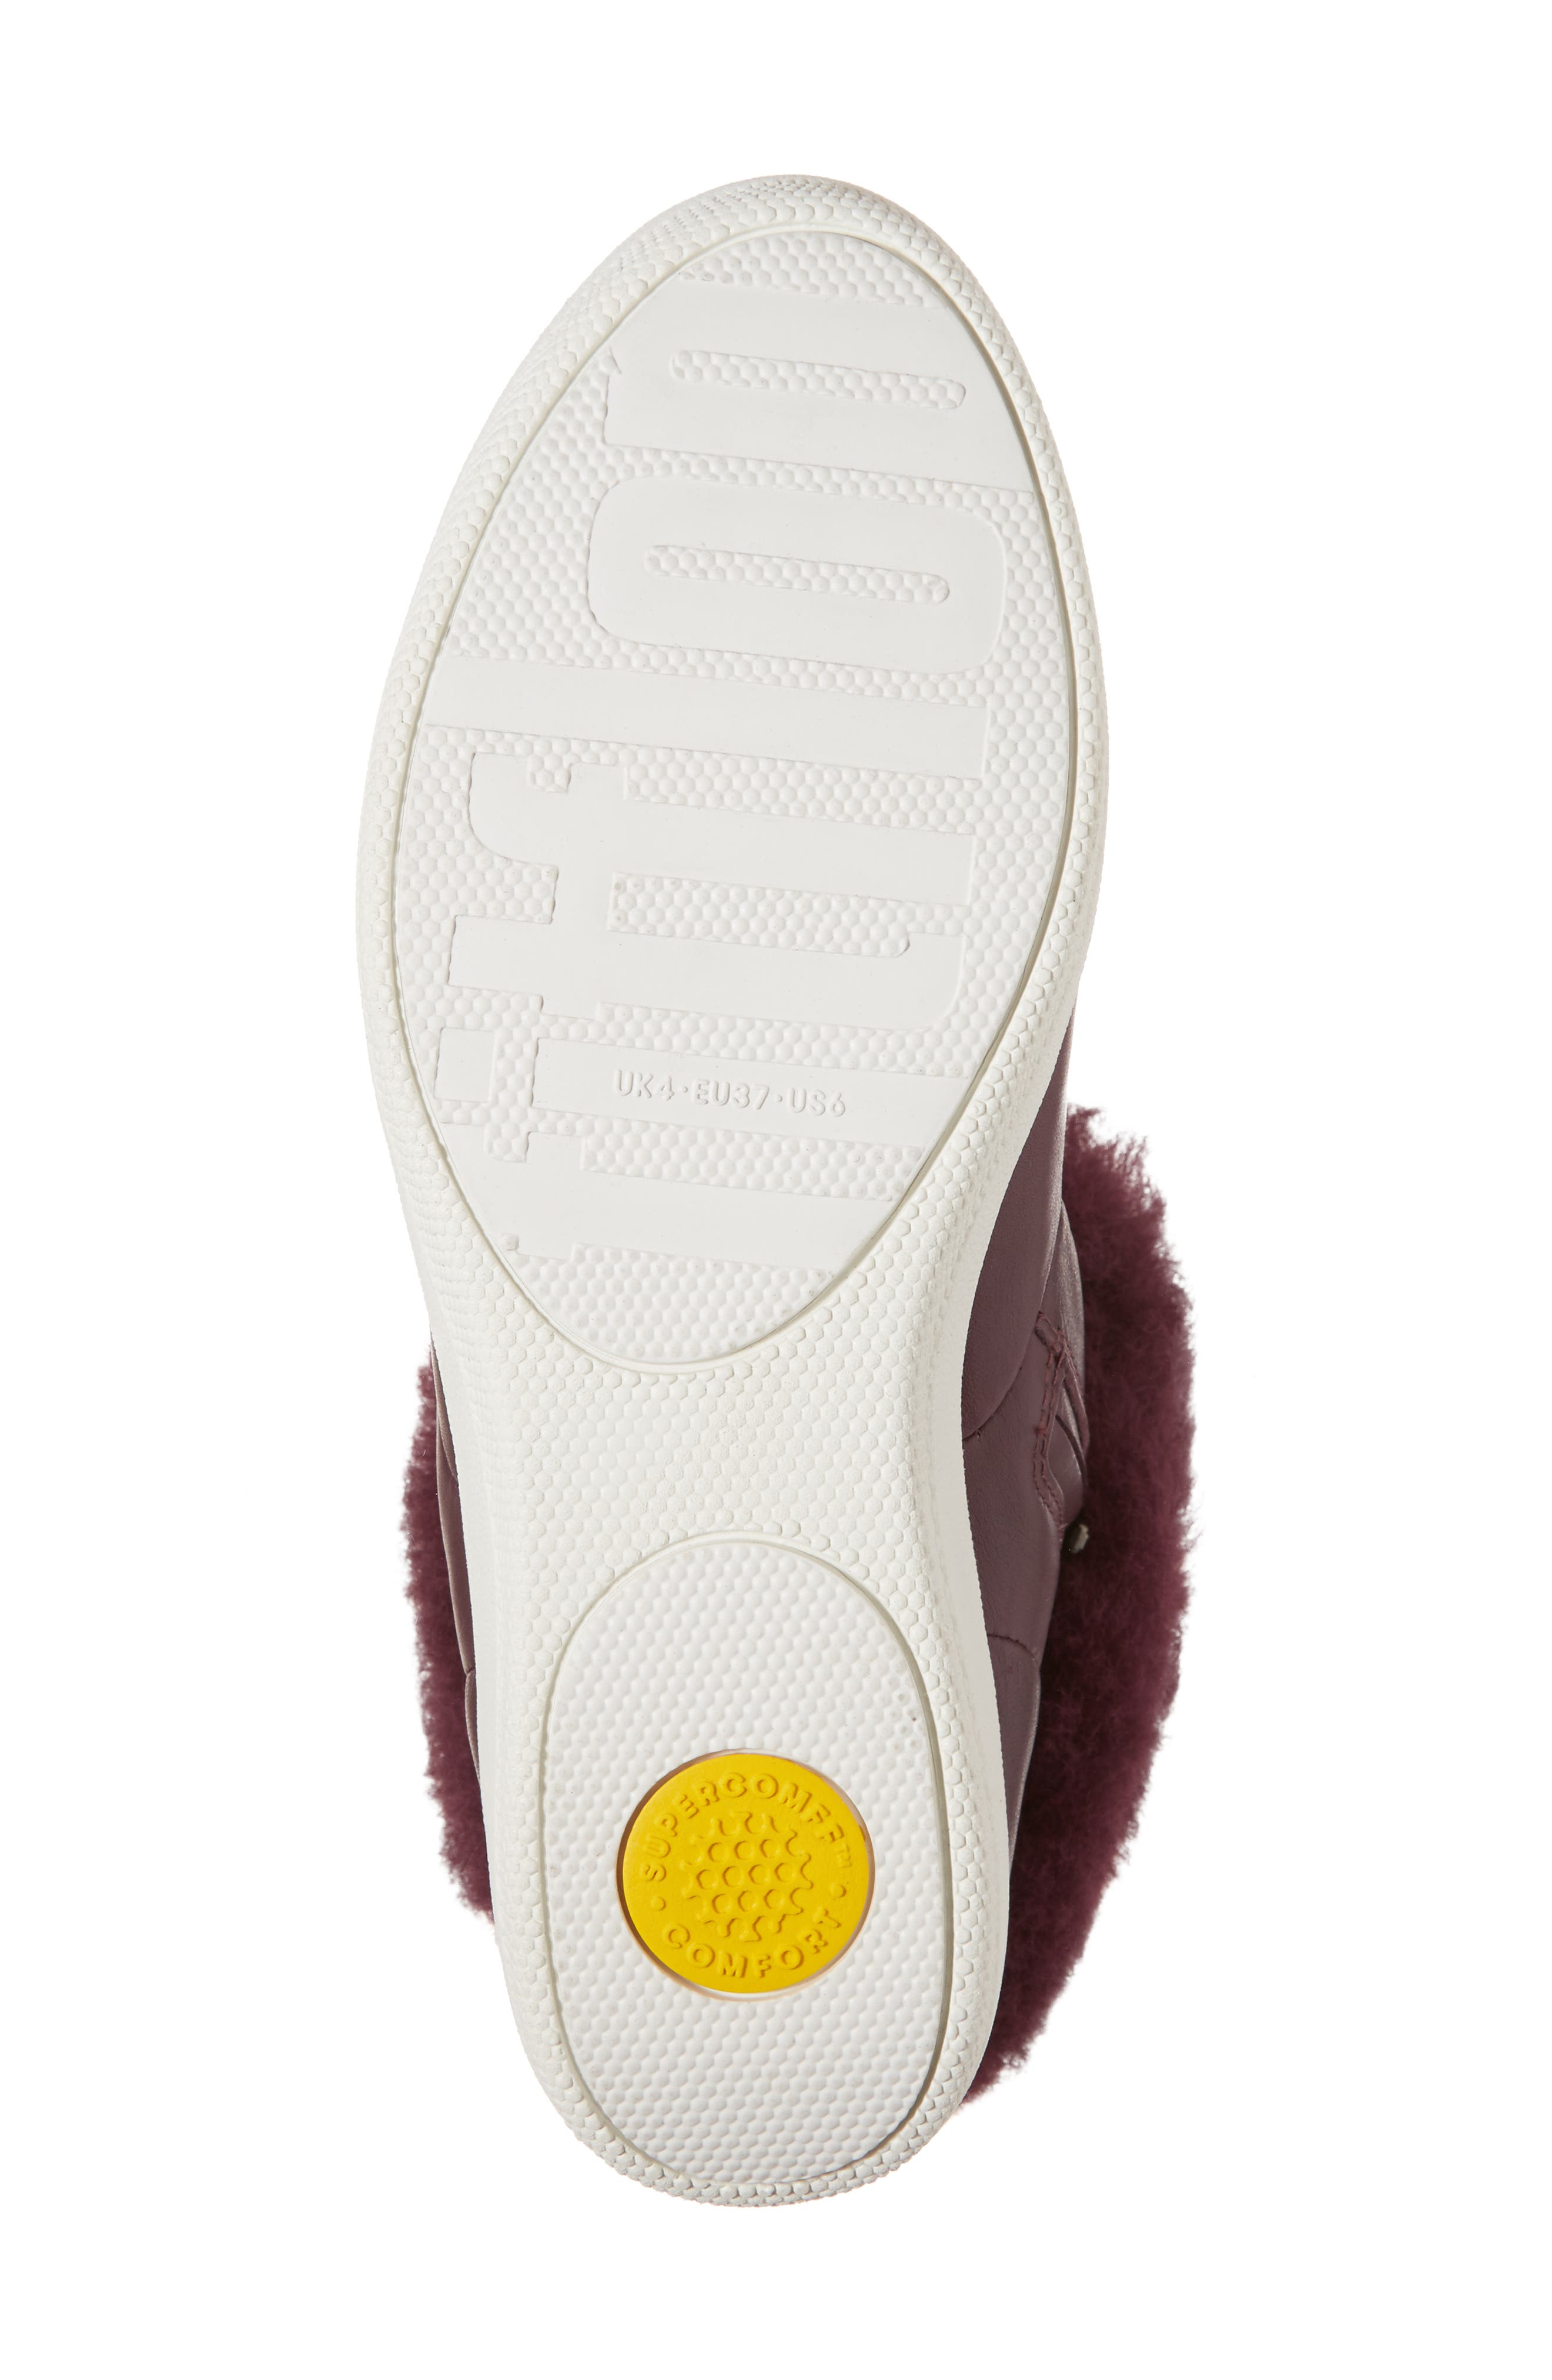 Skatebootie<sup>™</sup> with Genuine Shearling Cuff,                             Alternate thumbnail 6, color,                             Deep Plum